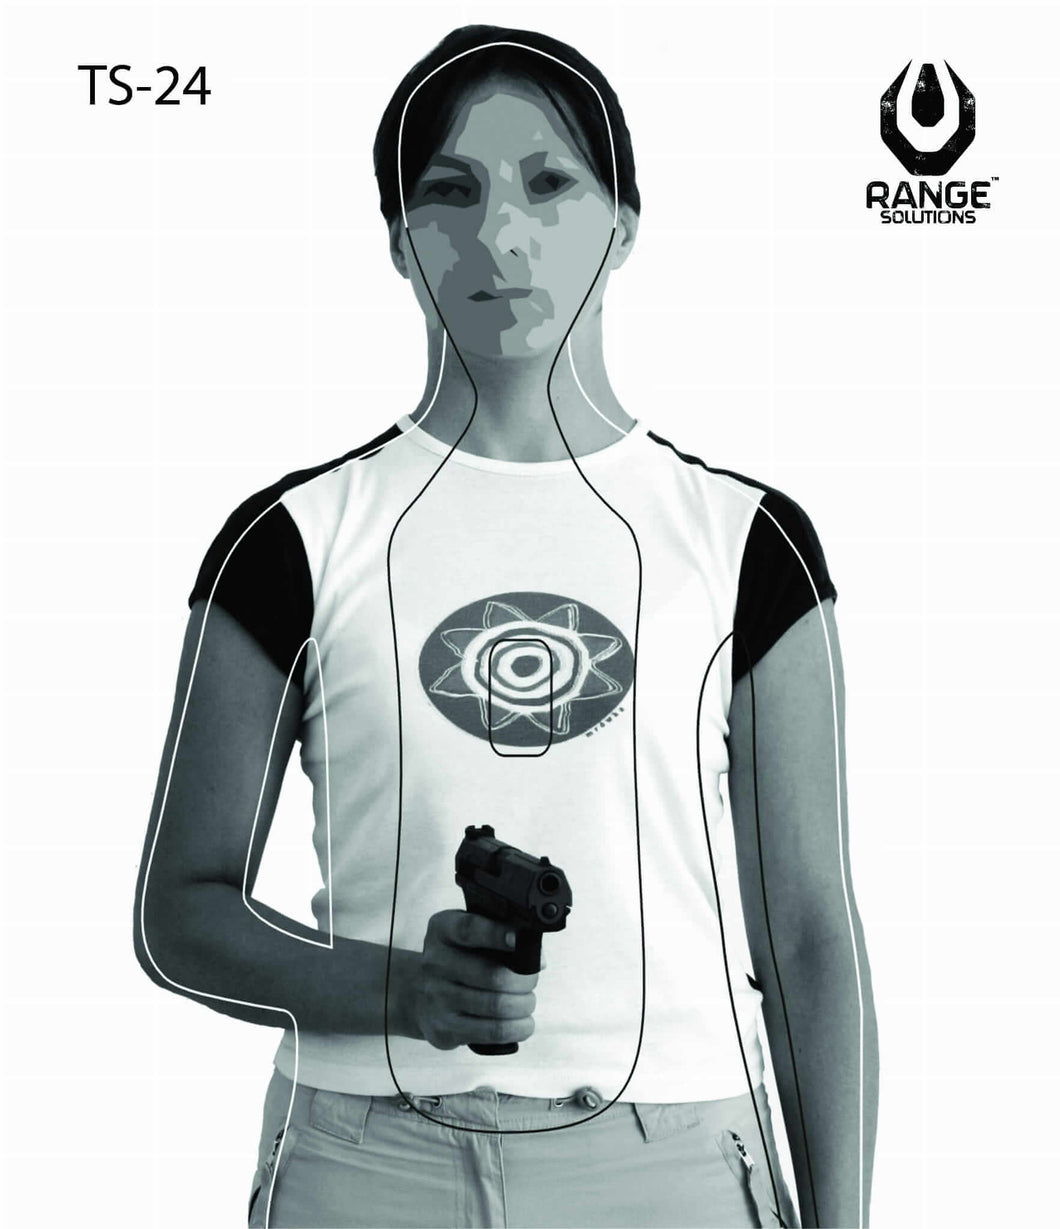 Range Solutions TS-24 targets, military and law enforcement training target